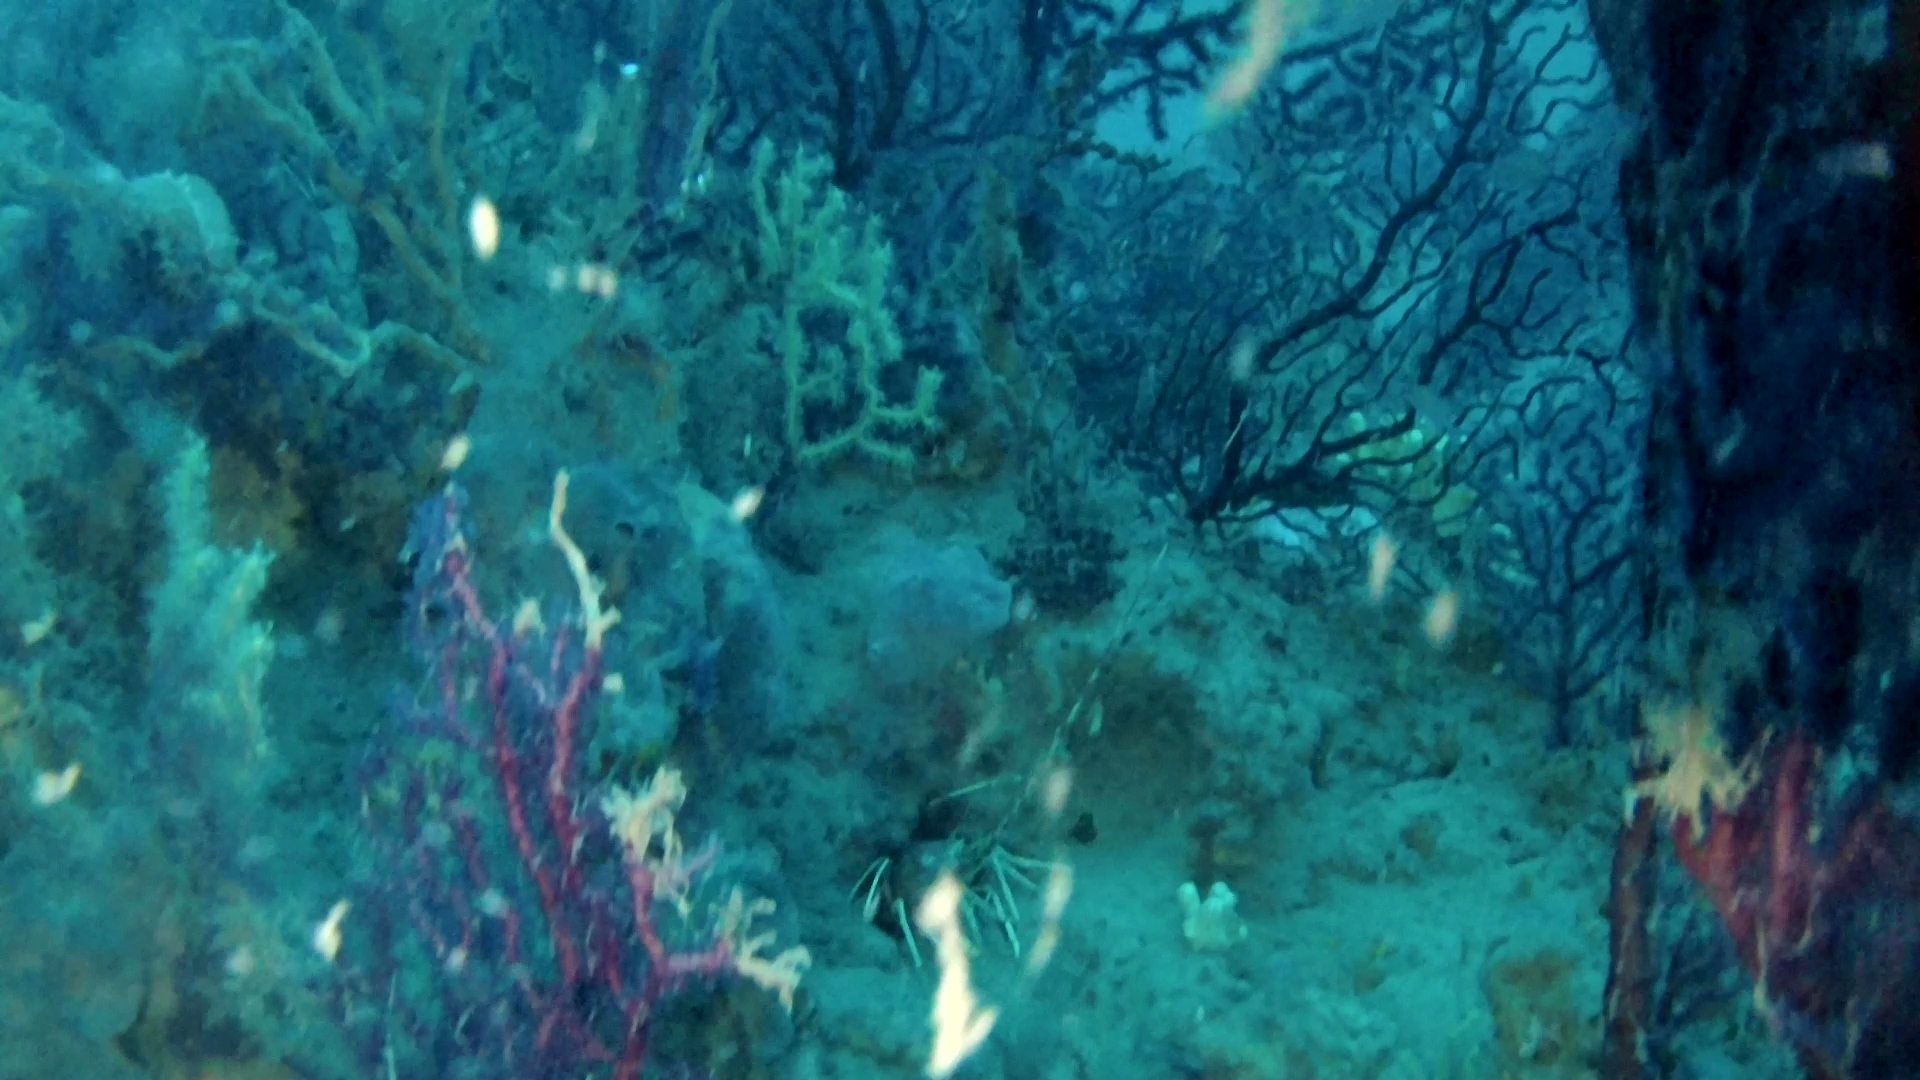 Mediterraneo: panorama sommerso mozzafiato – Mediterranean sea: underwater panorama breathtaking – intotheblue.it – vlcsnap-2019-03-12-16h01m25s202